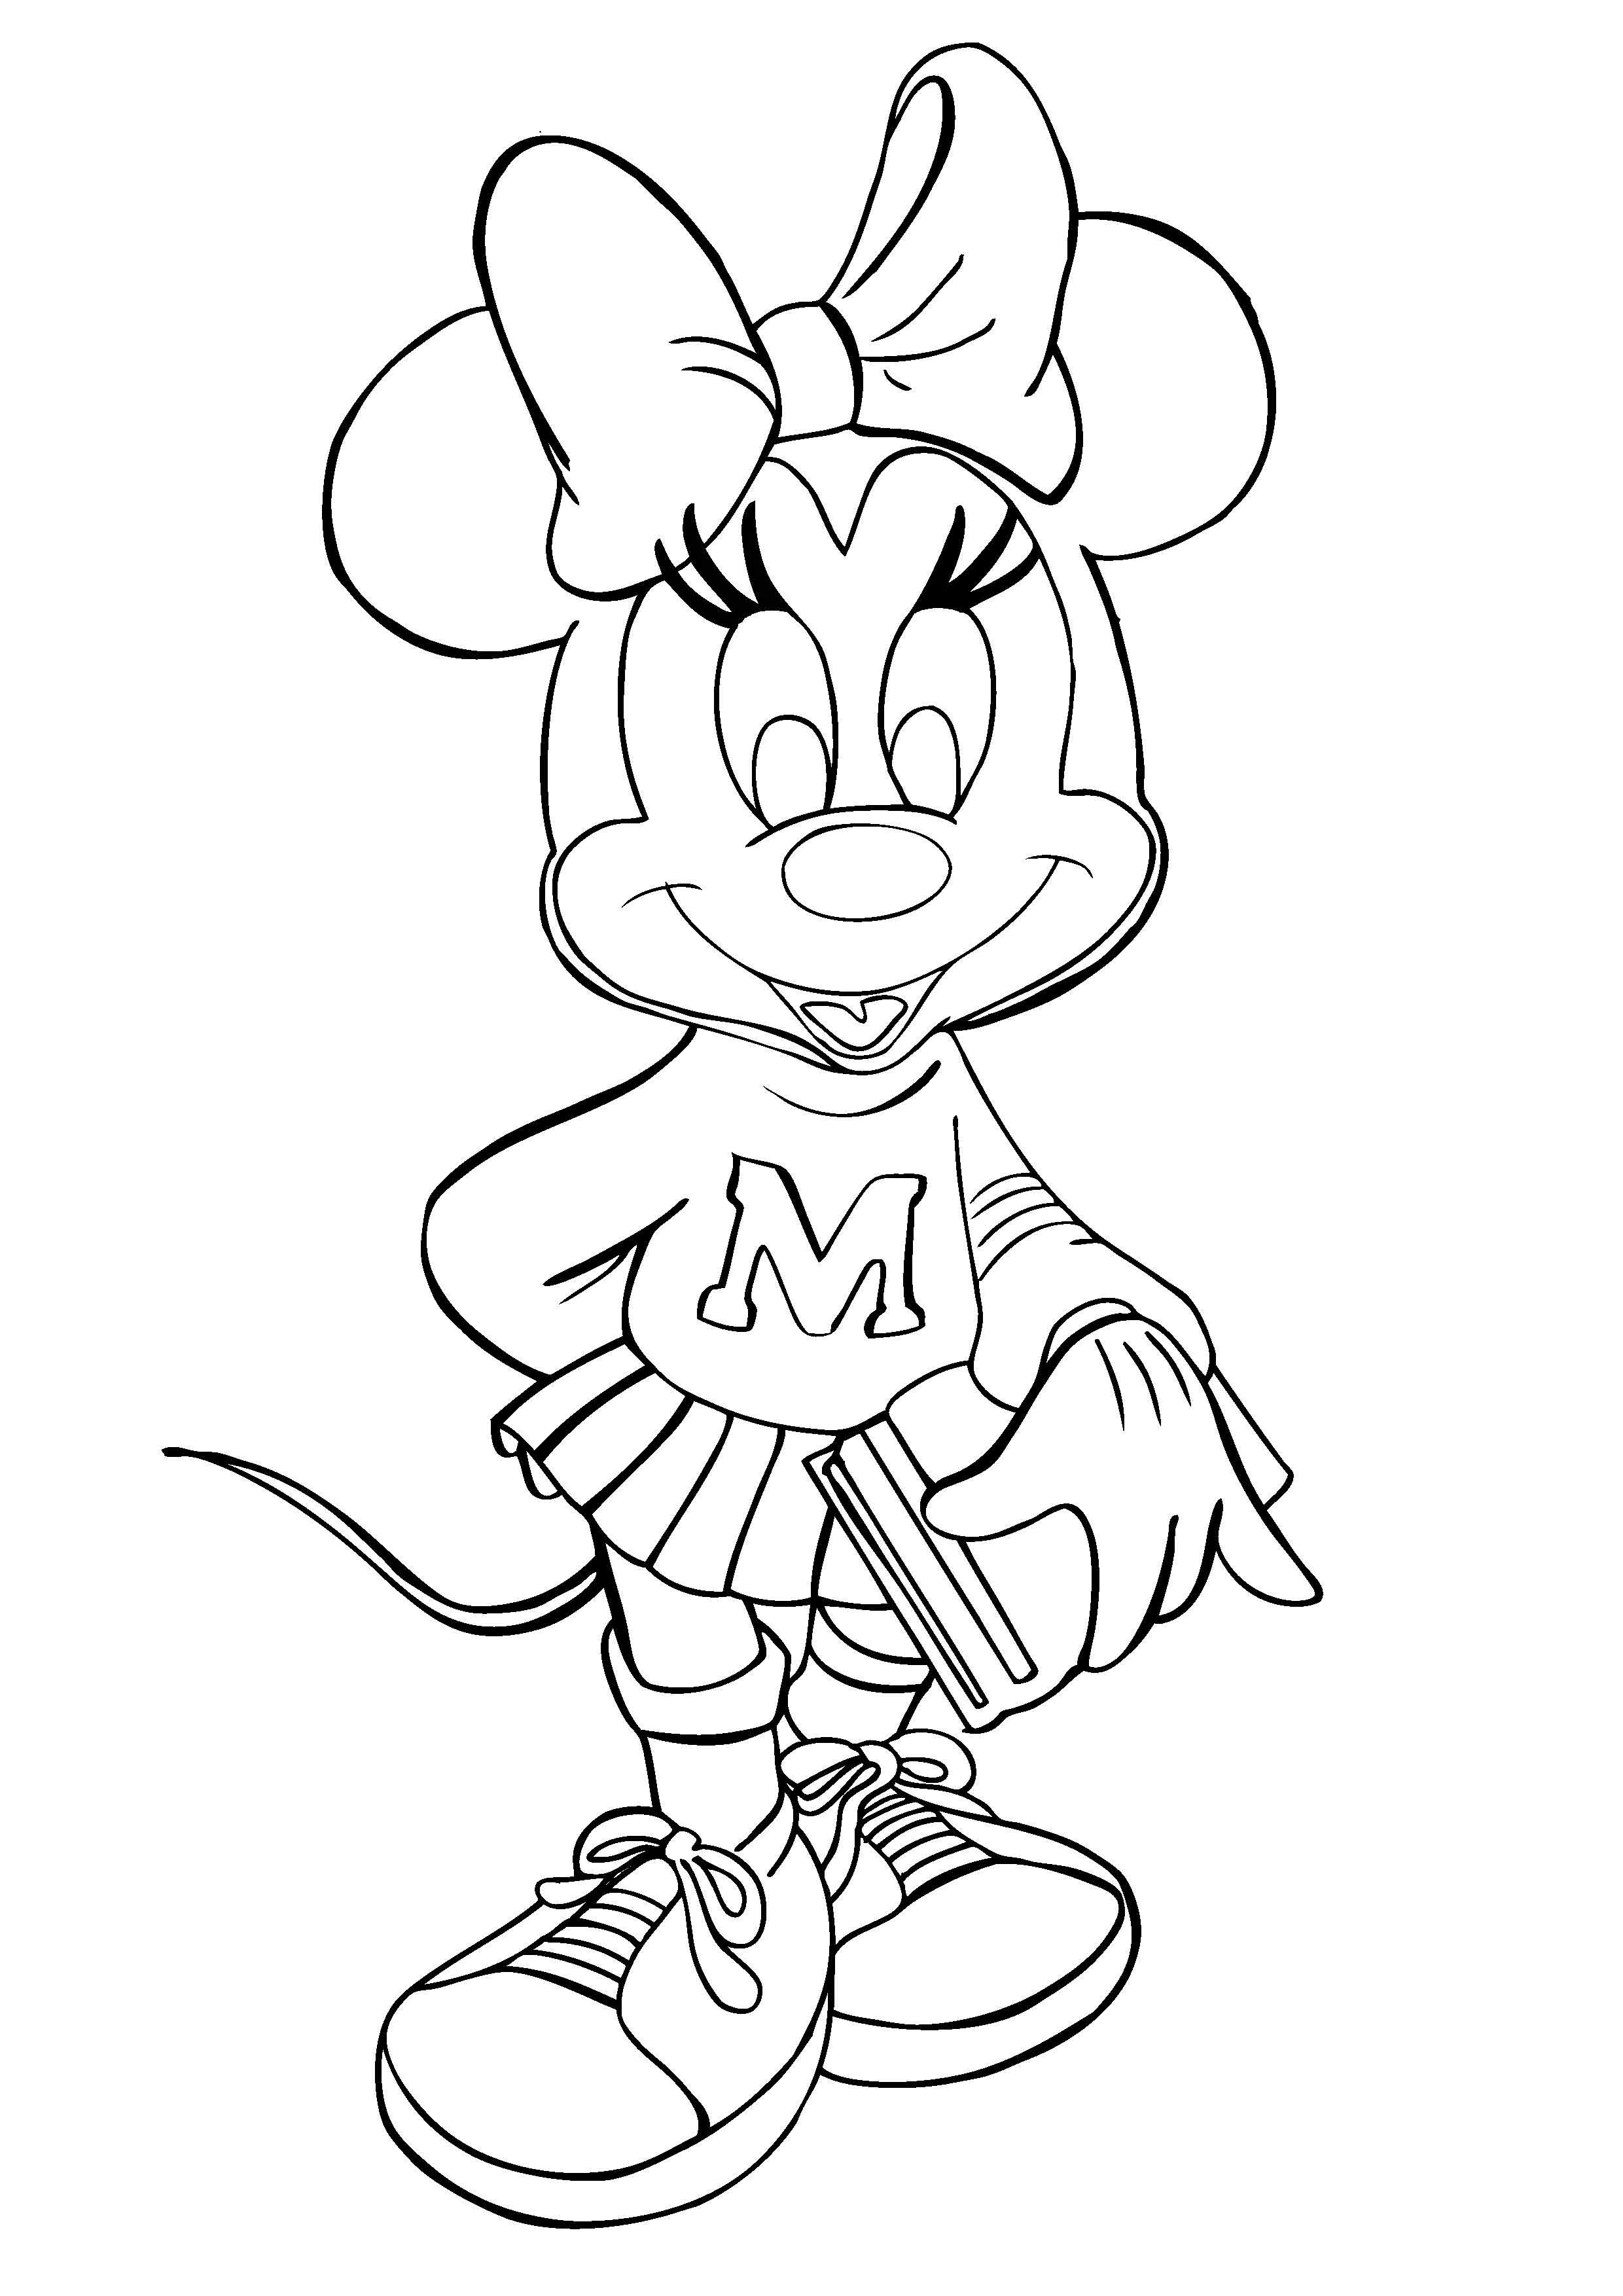 2480x3508 Minnie Mouse Coloring Pages Coloring Pages Kids Printable